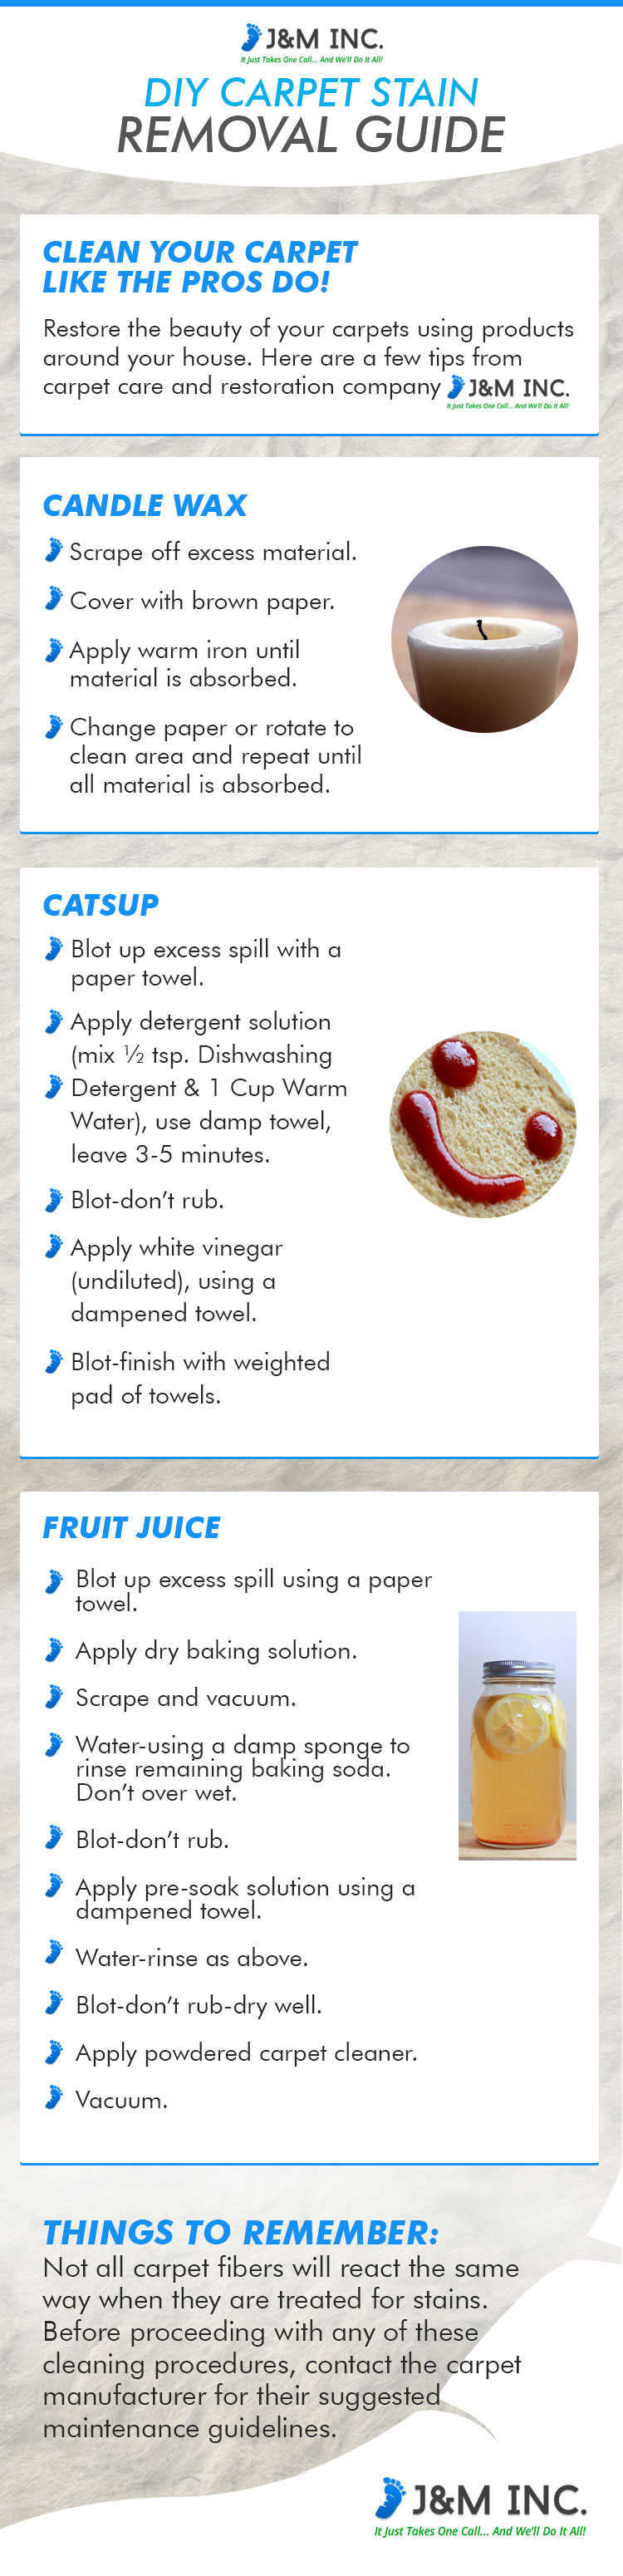 DIY Carpet Stain Removal Guide Infographics